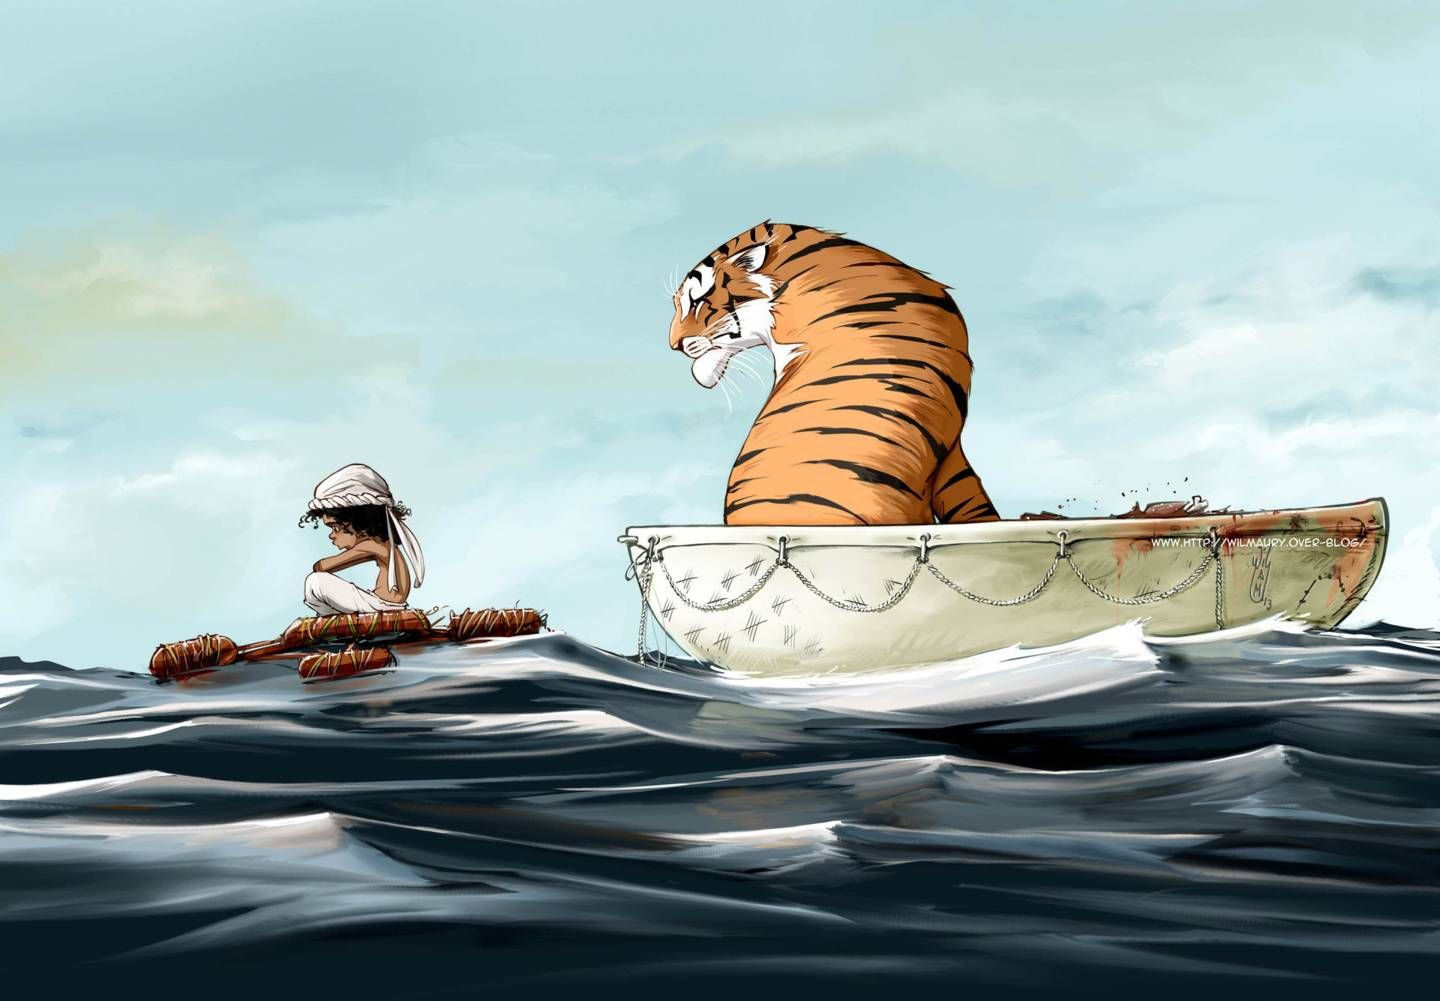 Life of pi fan art concept art pinterest fan art for Life of pi characterization